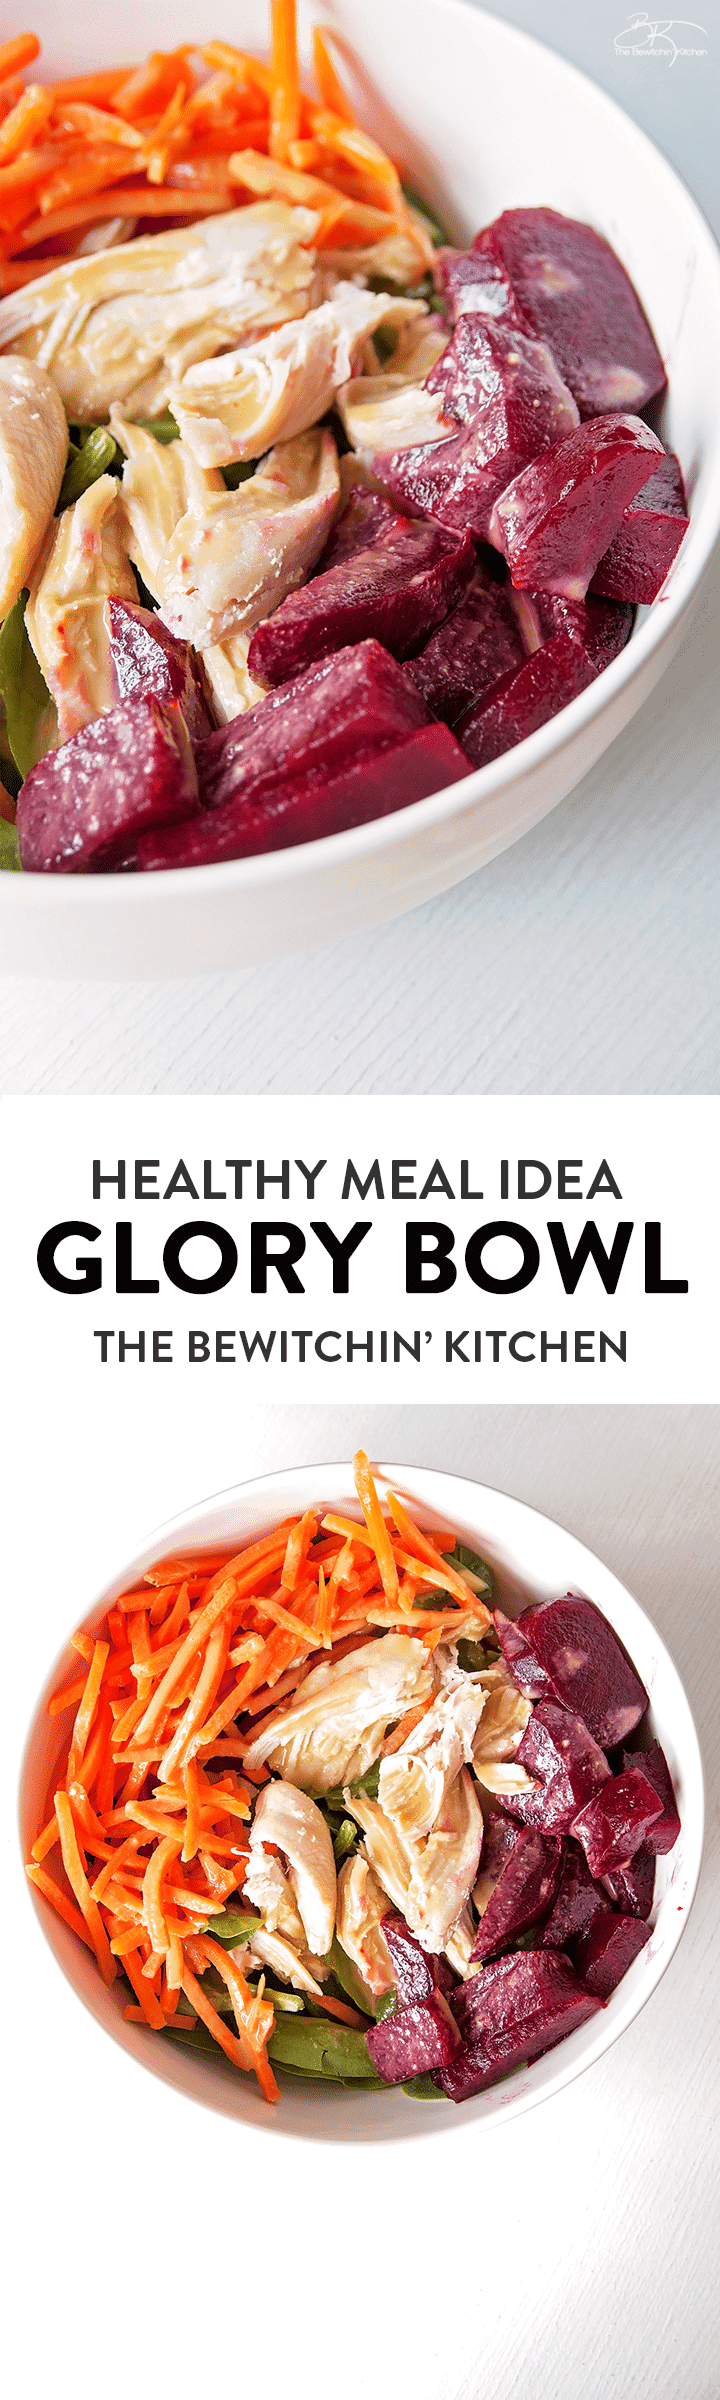 This Glory Bowl recipe is delicious and healthy with the beets, carrots, glory bowl dressing, quinoa, and chicken. Perfect for a clean eating lunch or dinner.